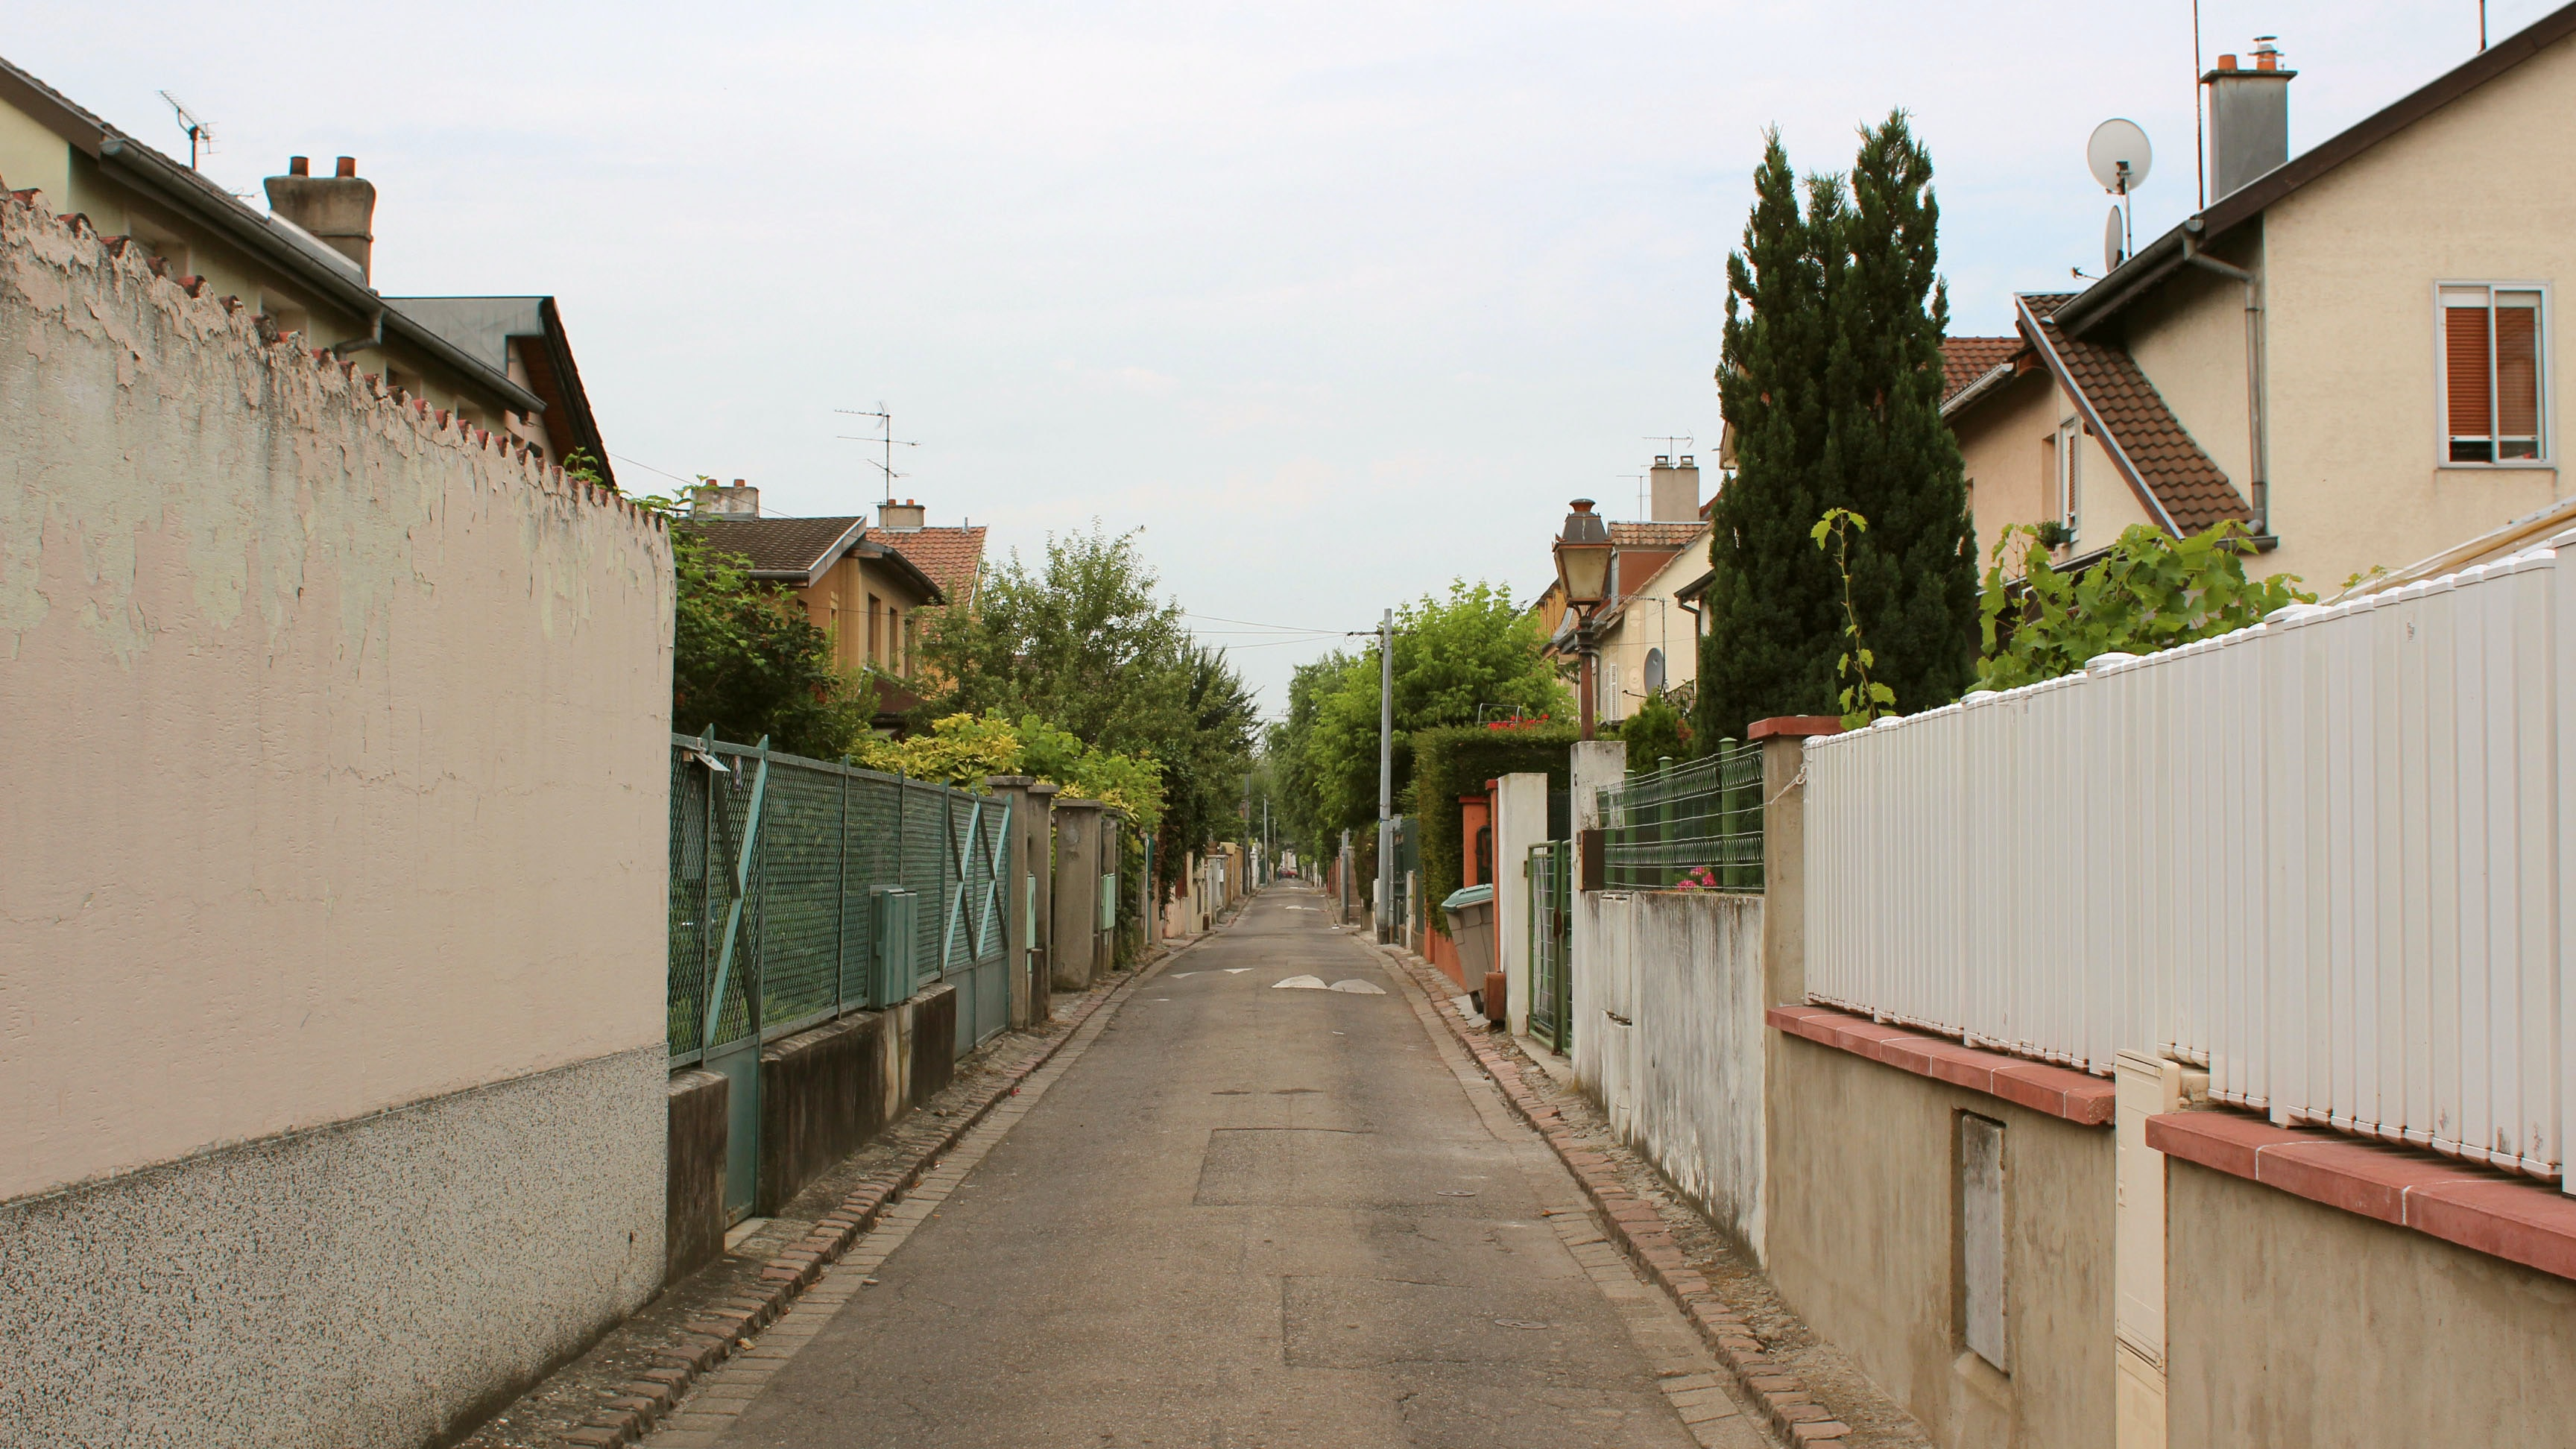 Street in an urban setting with fences surrounding houses along the road